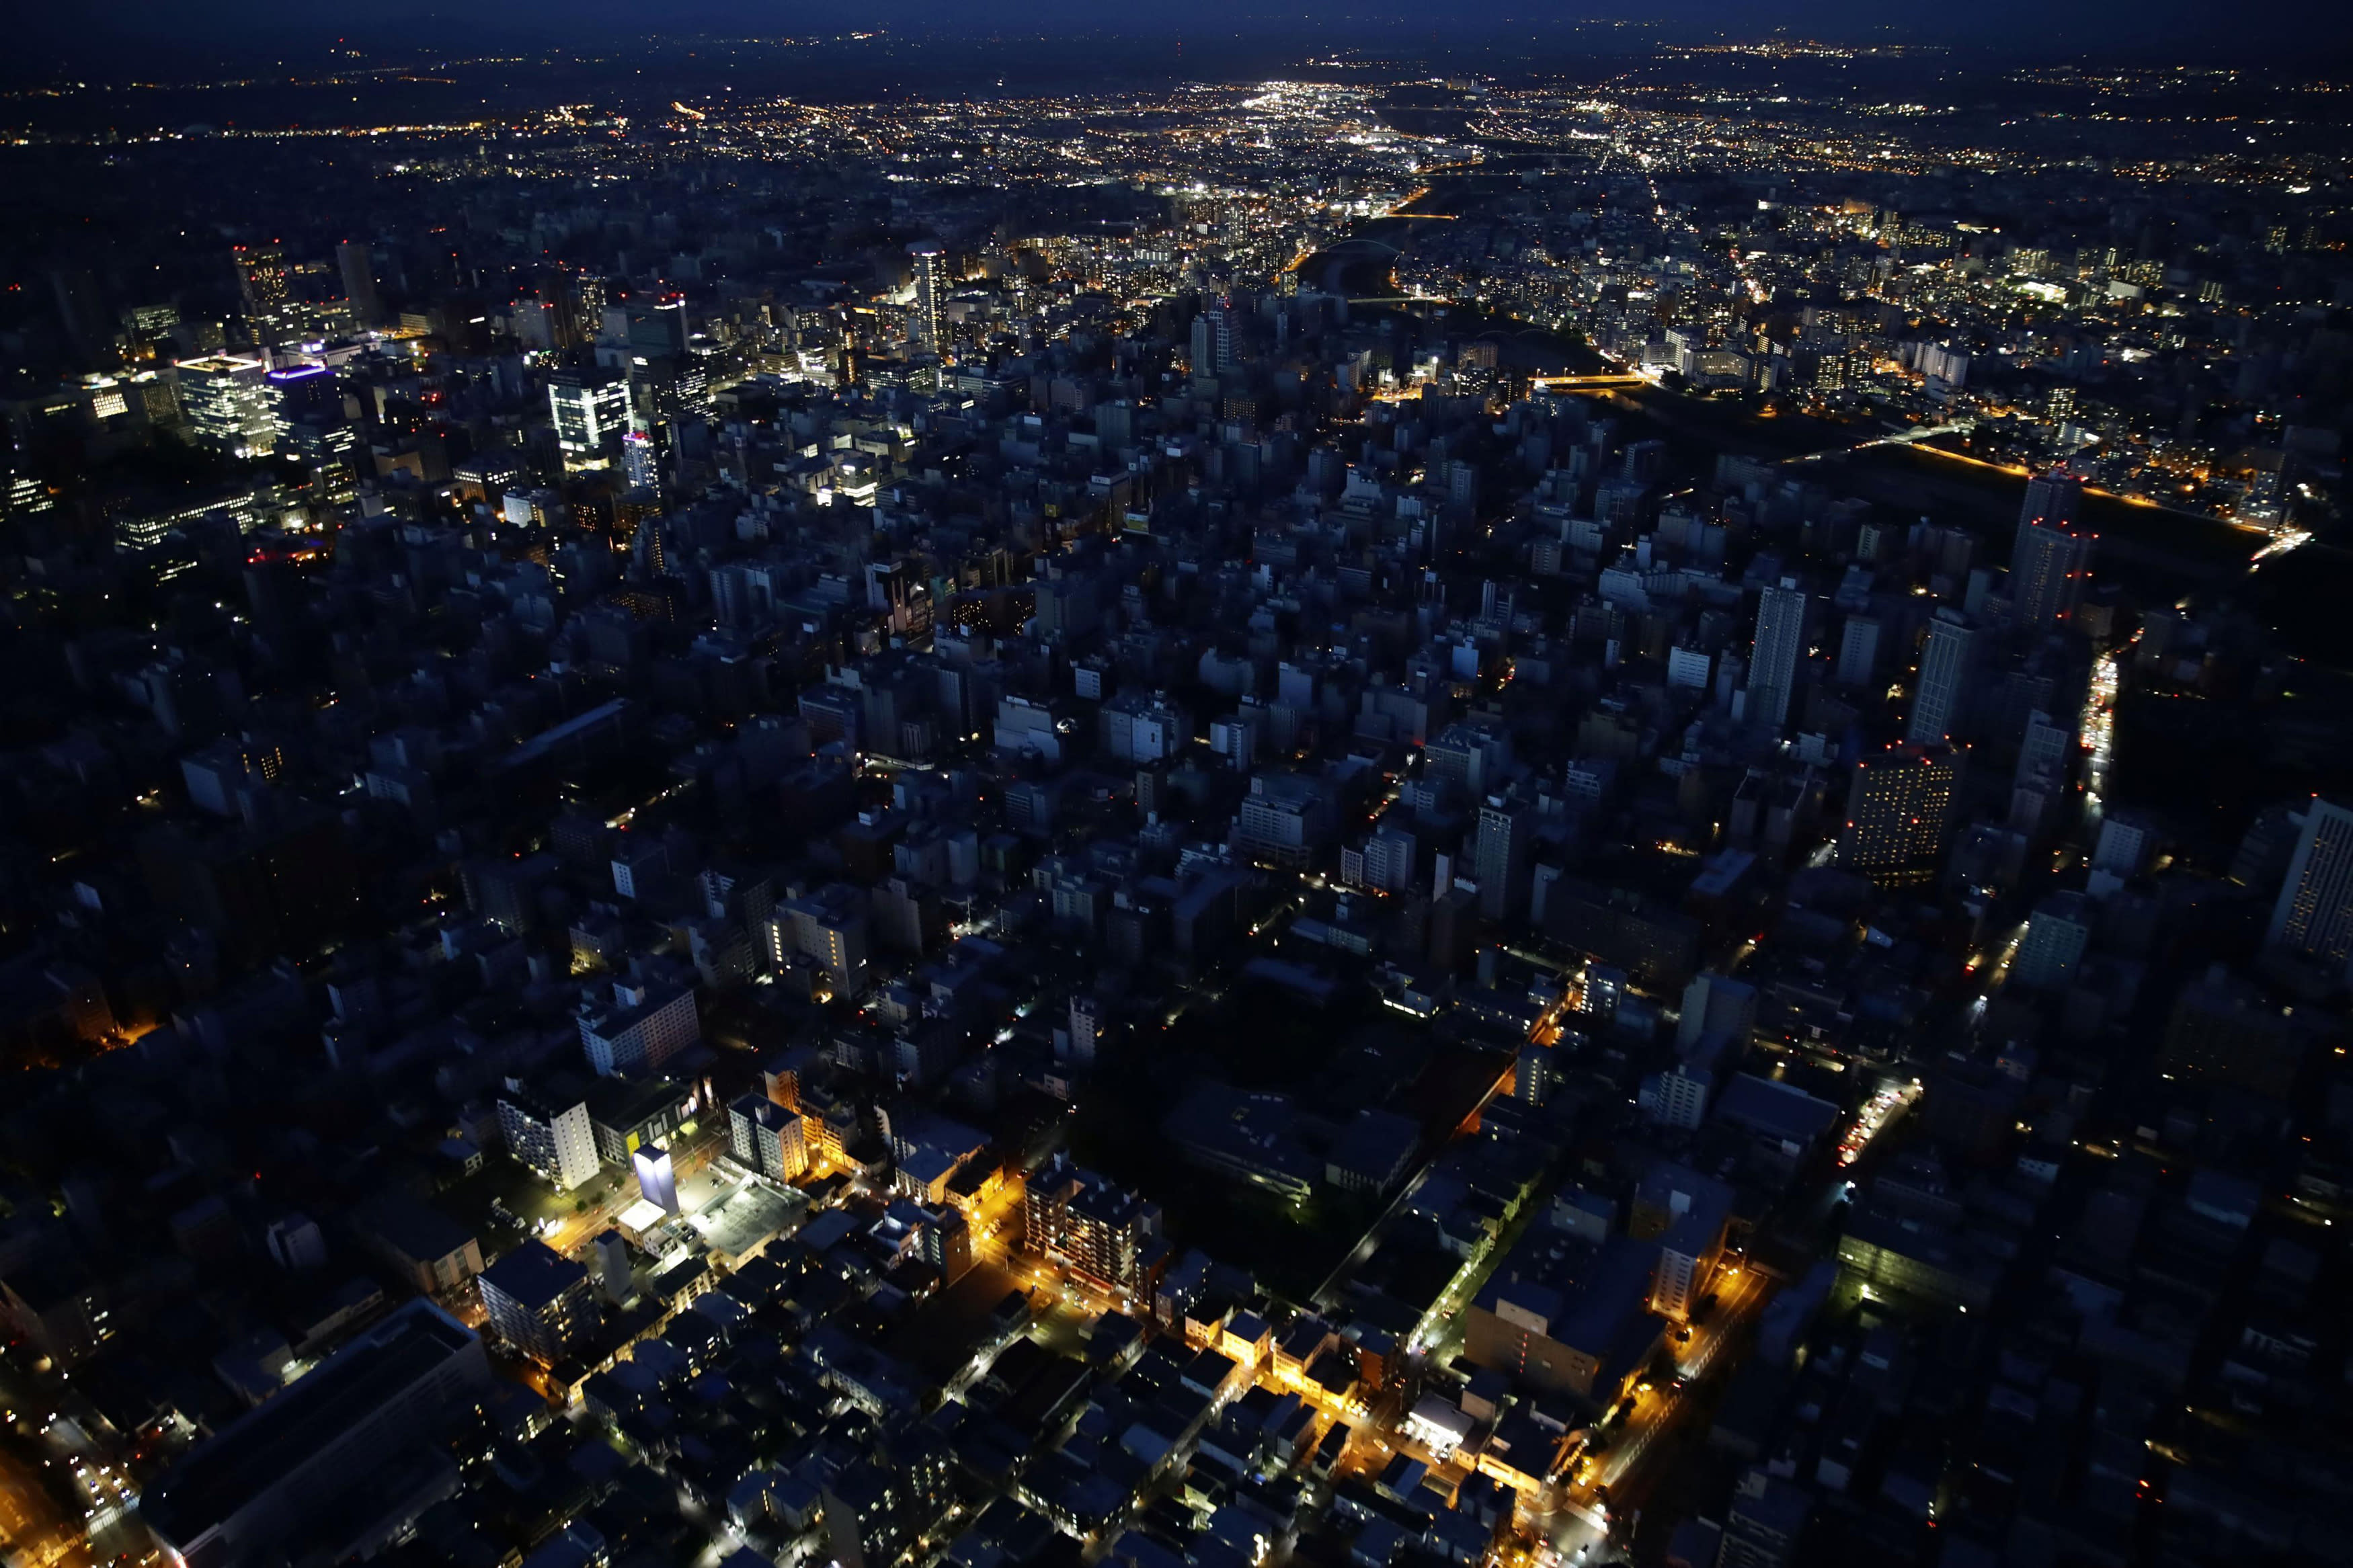 <p>Lights are off at central Sapporo, Hokkaido, northern Japan Thursday, Sept. 6, 2018. A powerful earthquake jolted Japan's northernmost main island of Hokkaido, buckling roads, knocking homes off their foundations and causing entire hillsides to collapse. (Photo: Hiroki Yamauchi/Kyodo News via AP) </p>